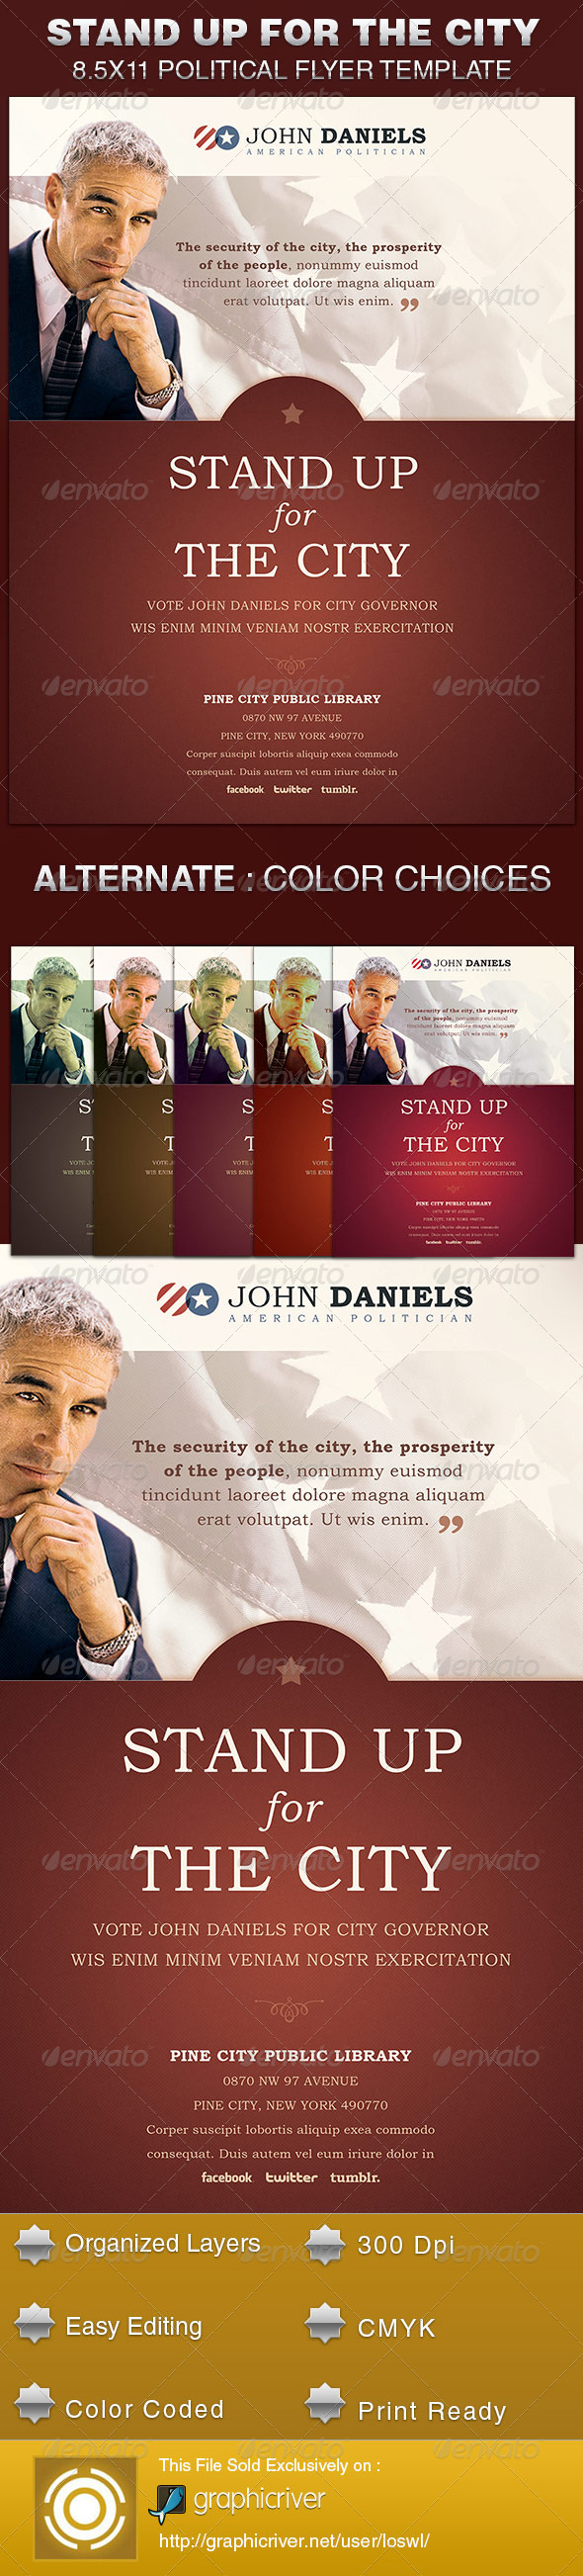 GraphicRiver Stand Up for the City Political Flyer Template 5540589